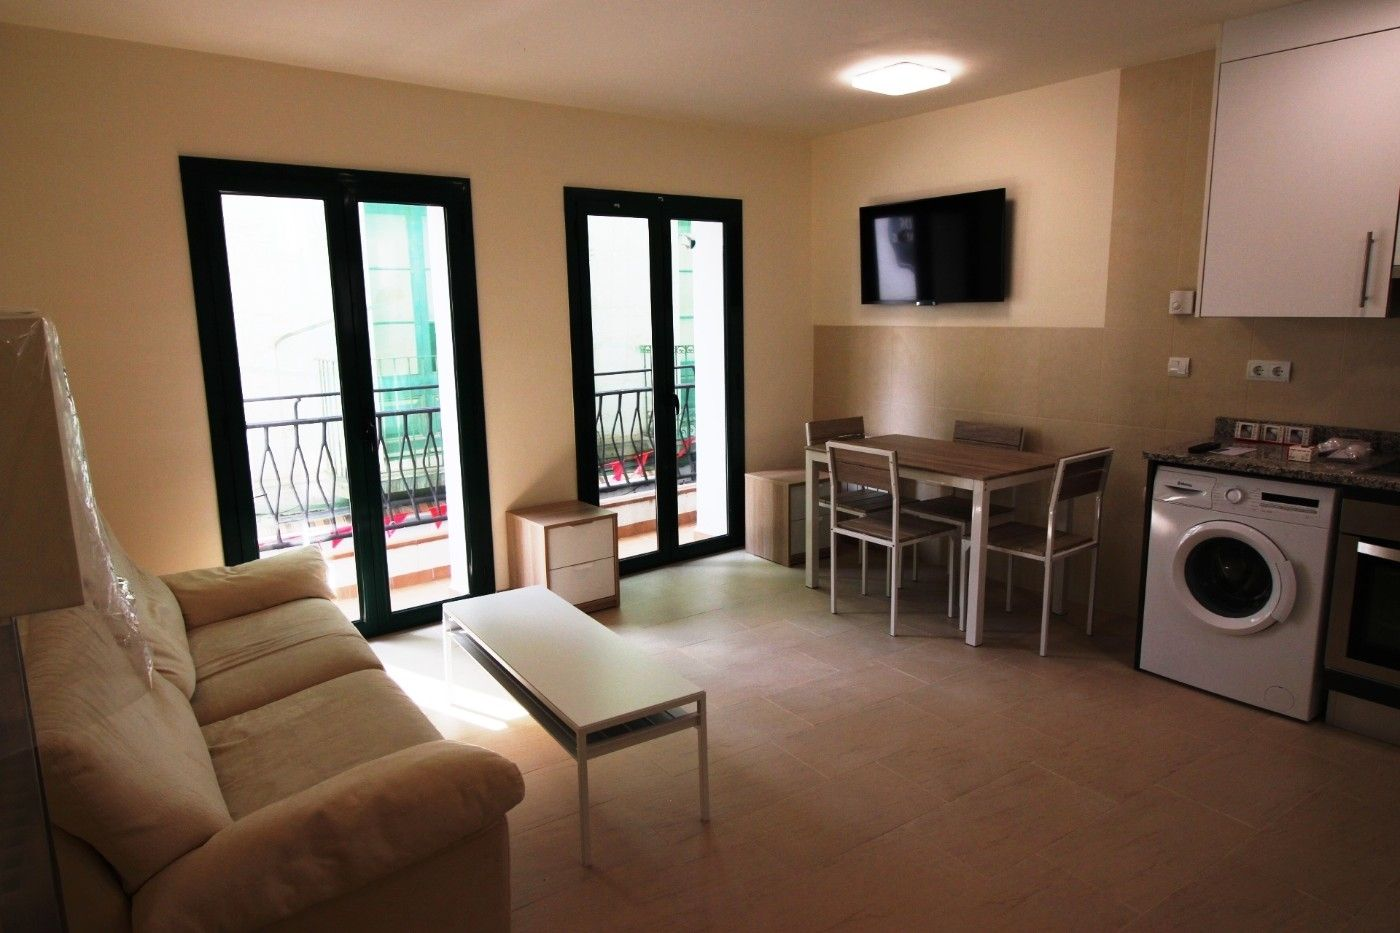 Location Duplex à Carrer traginers (dels), 7. Muy centrico